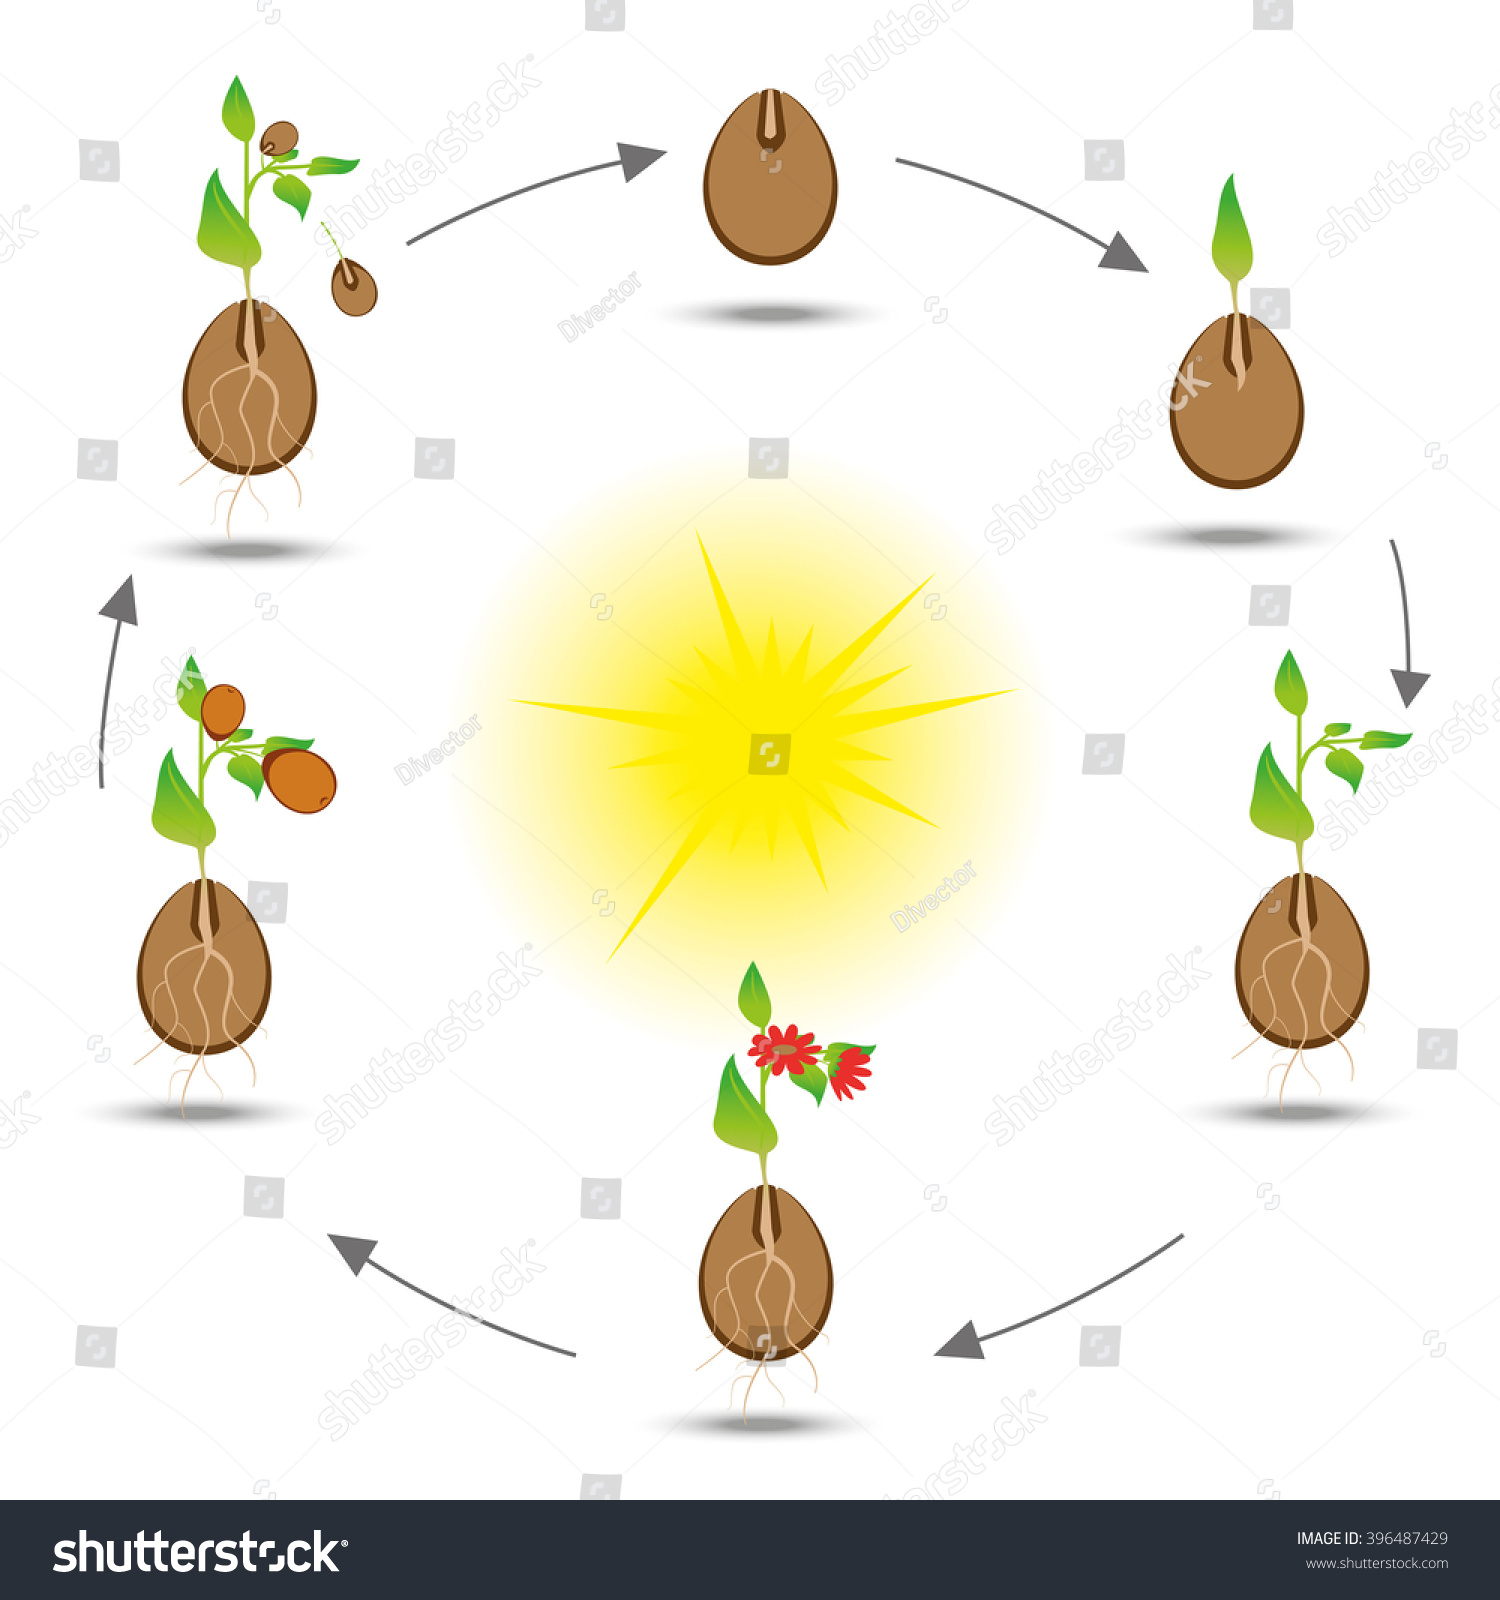 sunflower plant life cycle diagram 3 way active crossover circuit of lavender flower lily